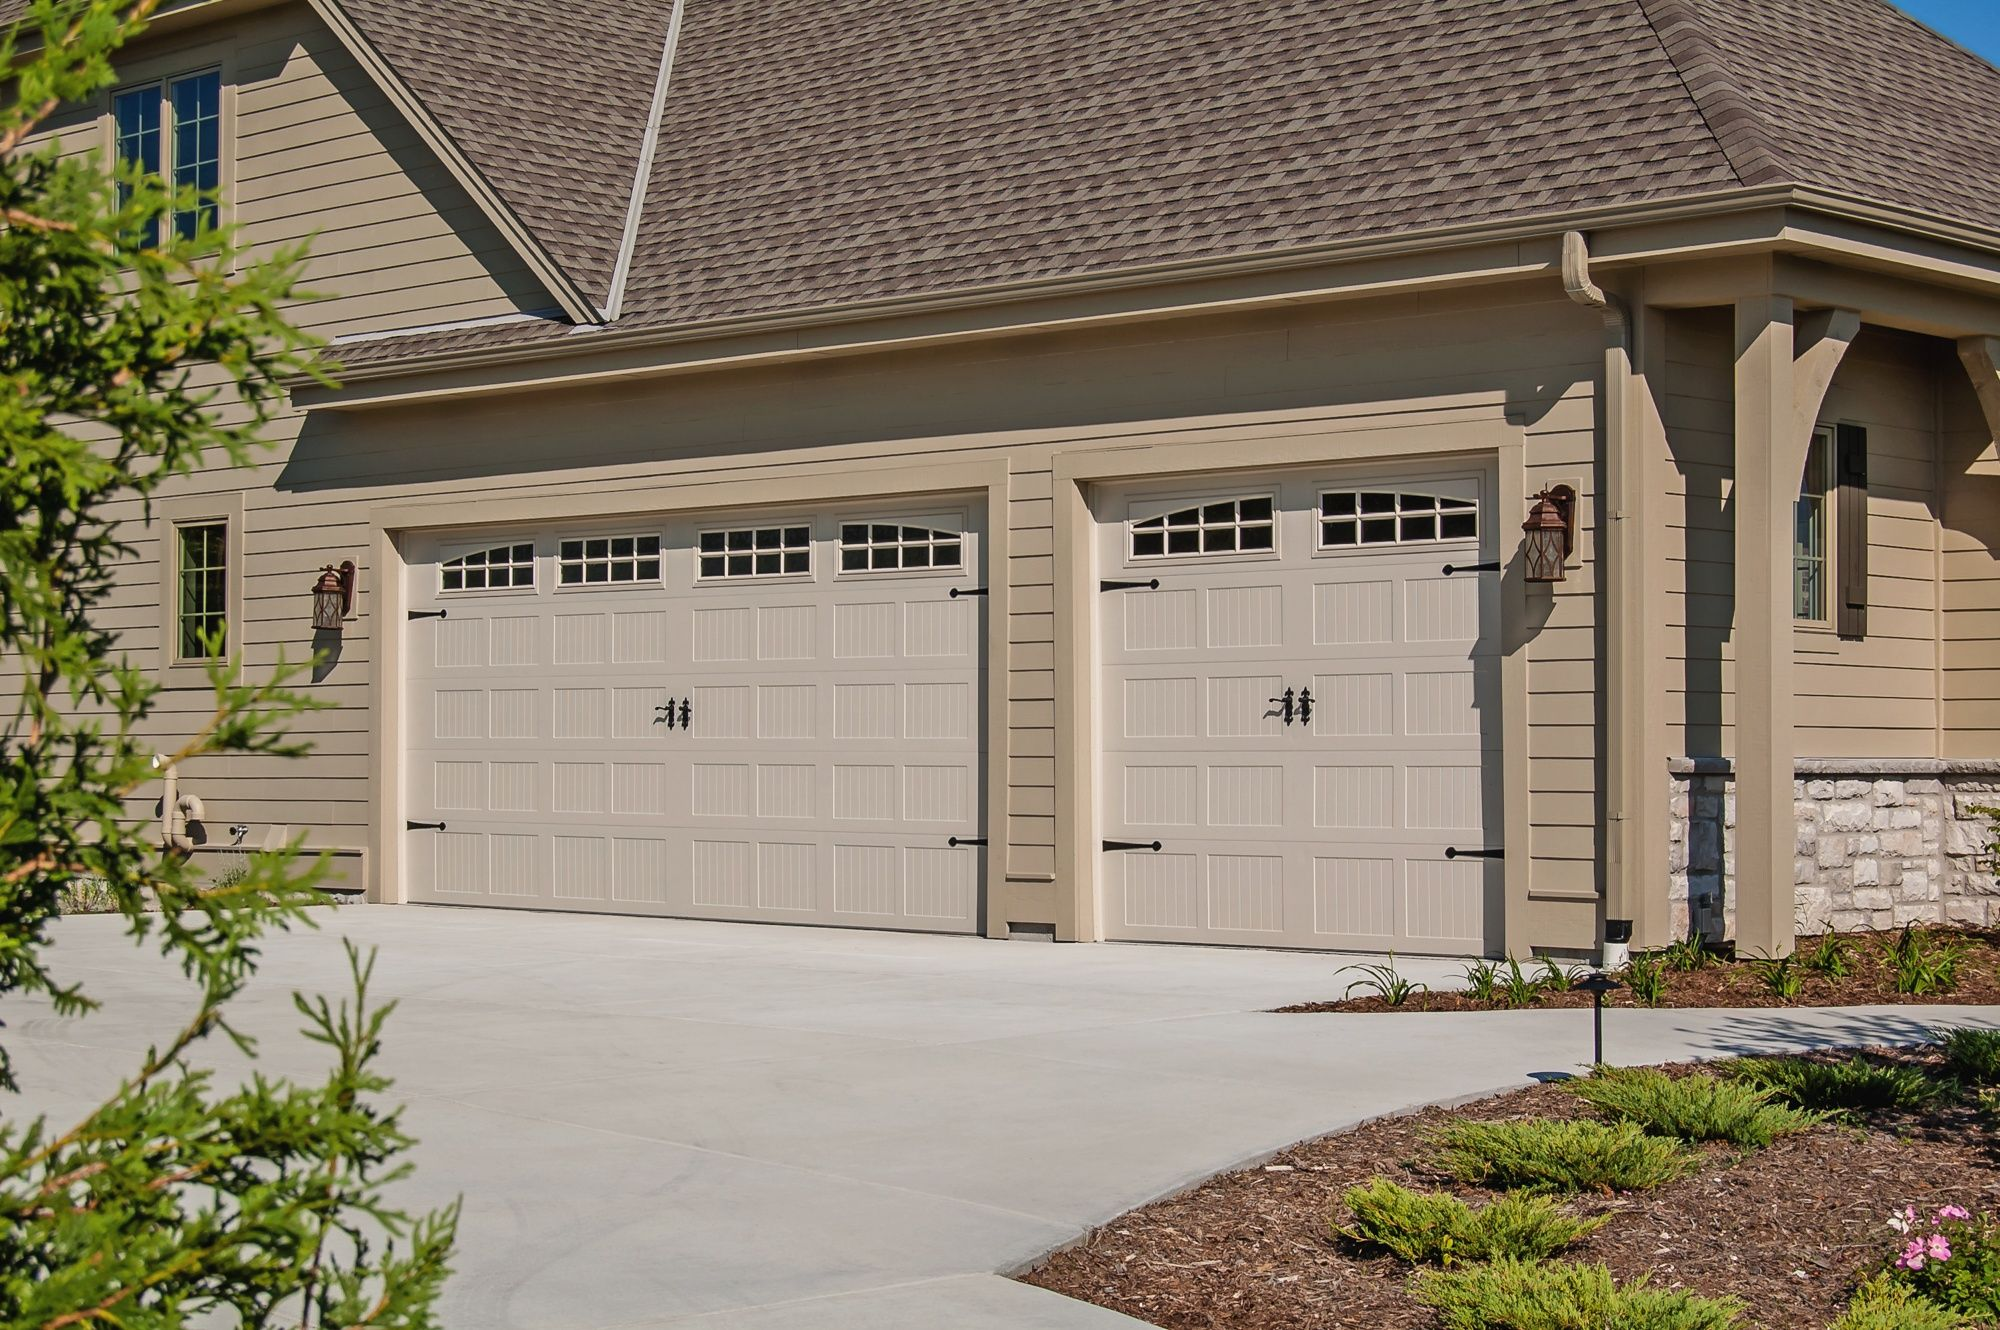 Rustic Craftsmanship Brings Unparalleled Warmth And Individuality To Chi S Line Of Carriage House Style Garage Doors Built With Handcrafted Details A